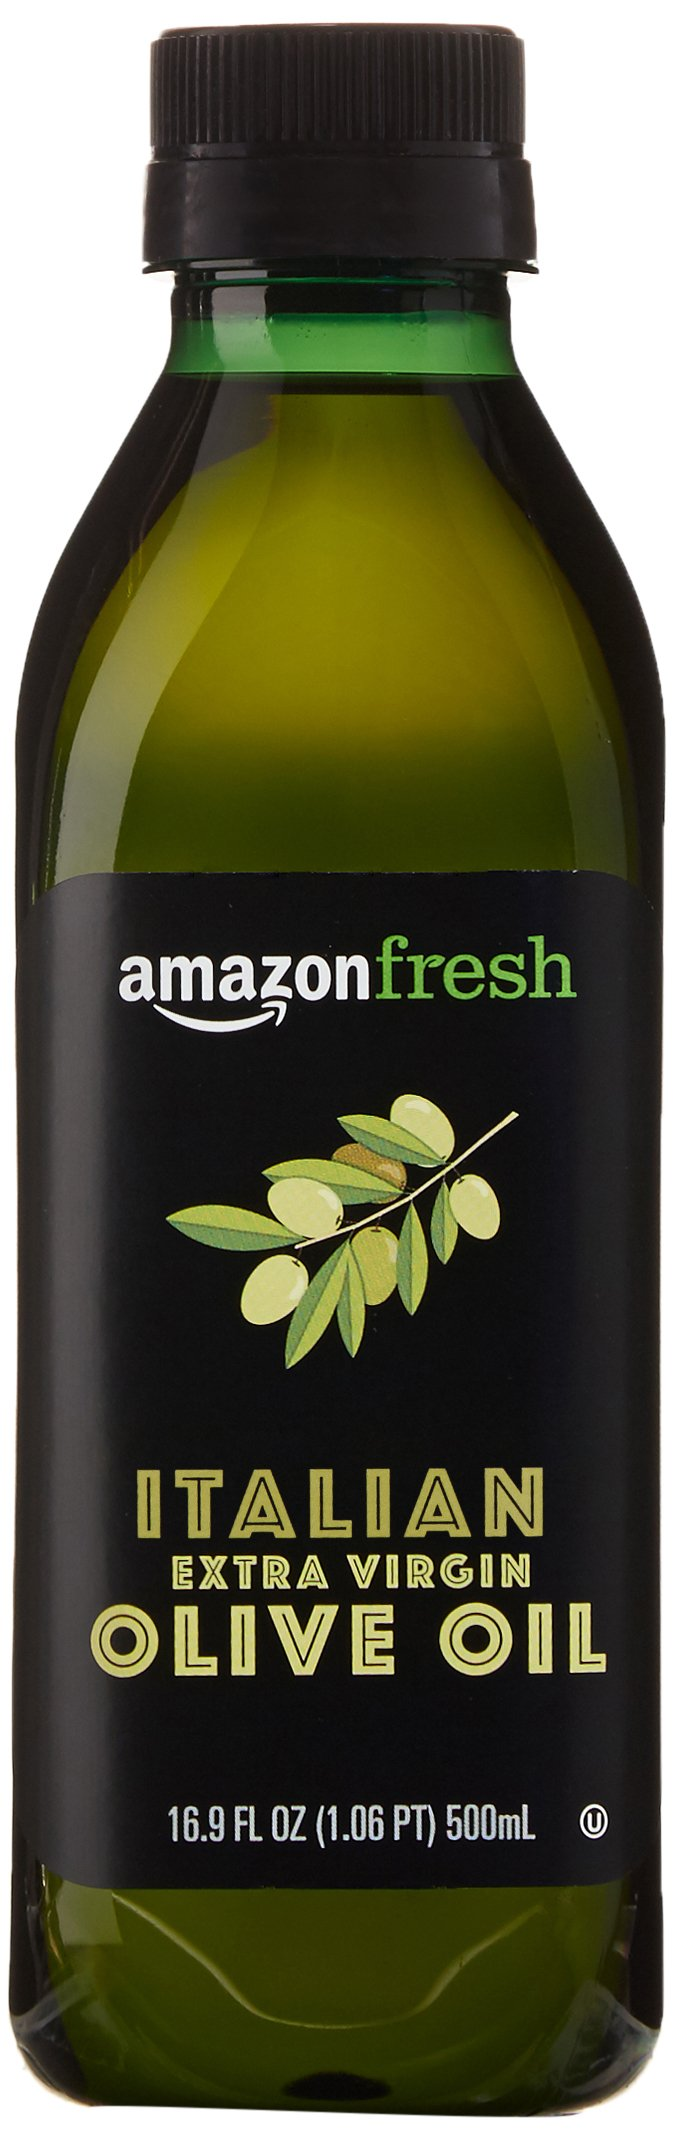 AmazonFresh Italian Extra Virgin Olive Oil, 16.9 fl oz (500mL) 1 A smooth blend with subtle notes of pepper and herbs Pressed and bottled in Italy Use for cooking, grilling, and in finishing dishes